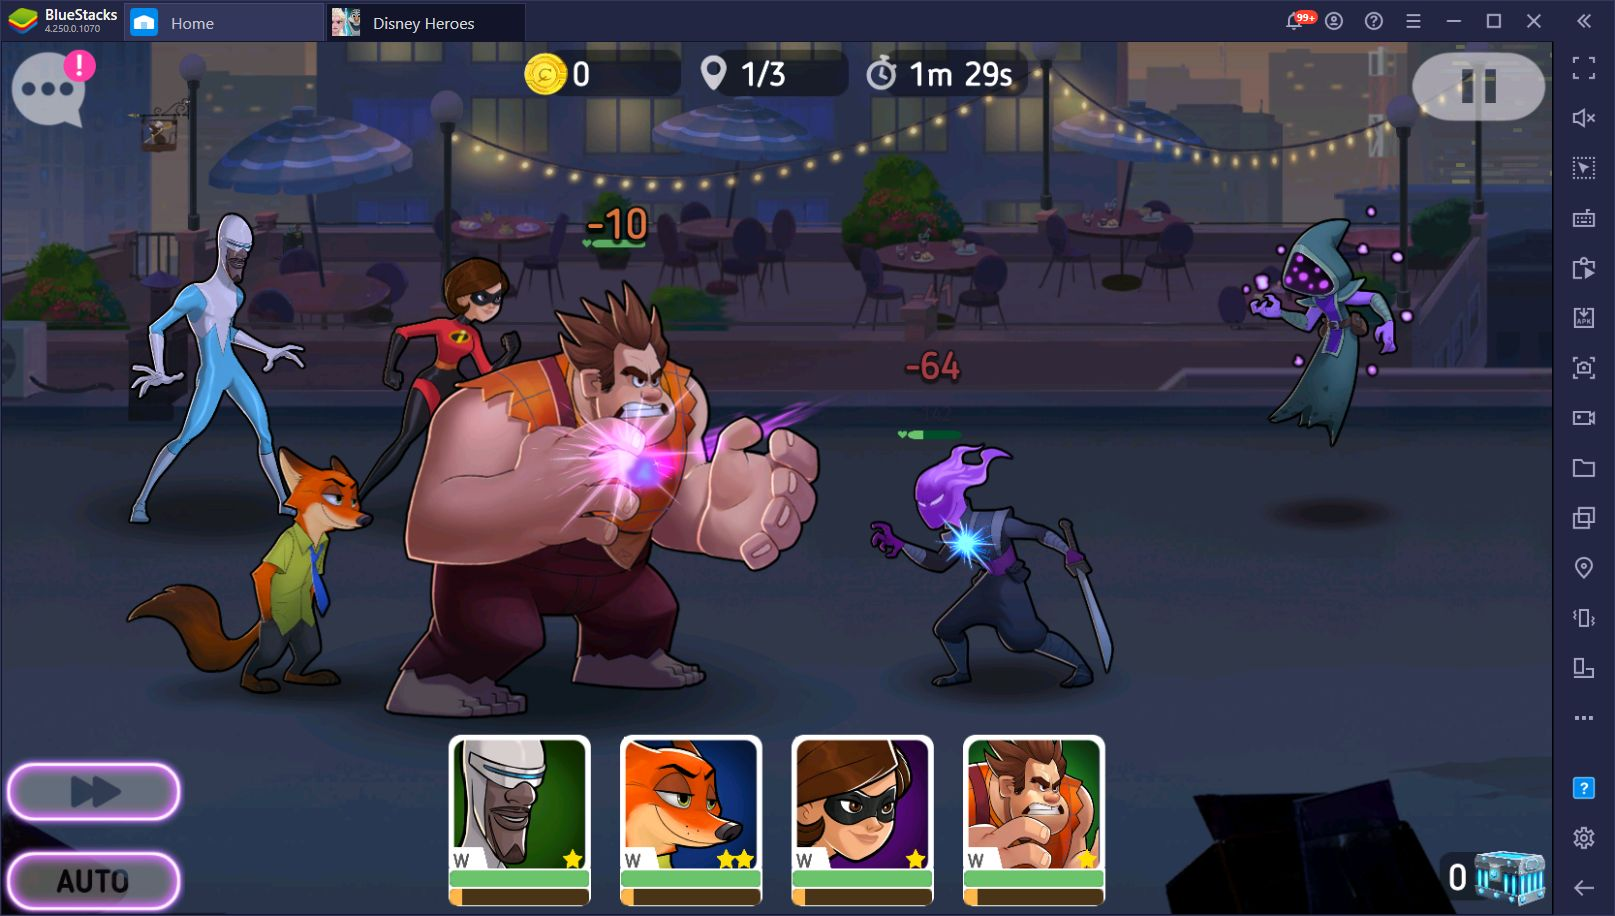 Disney Heroes: Battle Mode on PC – Play on BlueStacks and Get Access to Exclusive Tools and Features